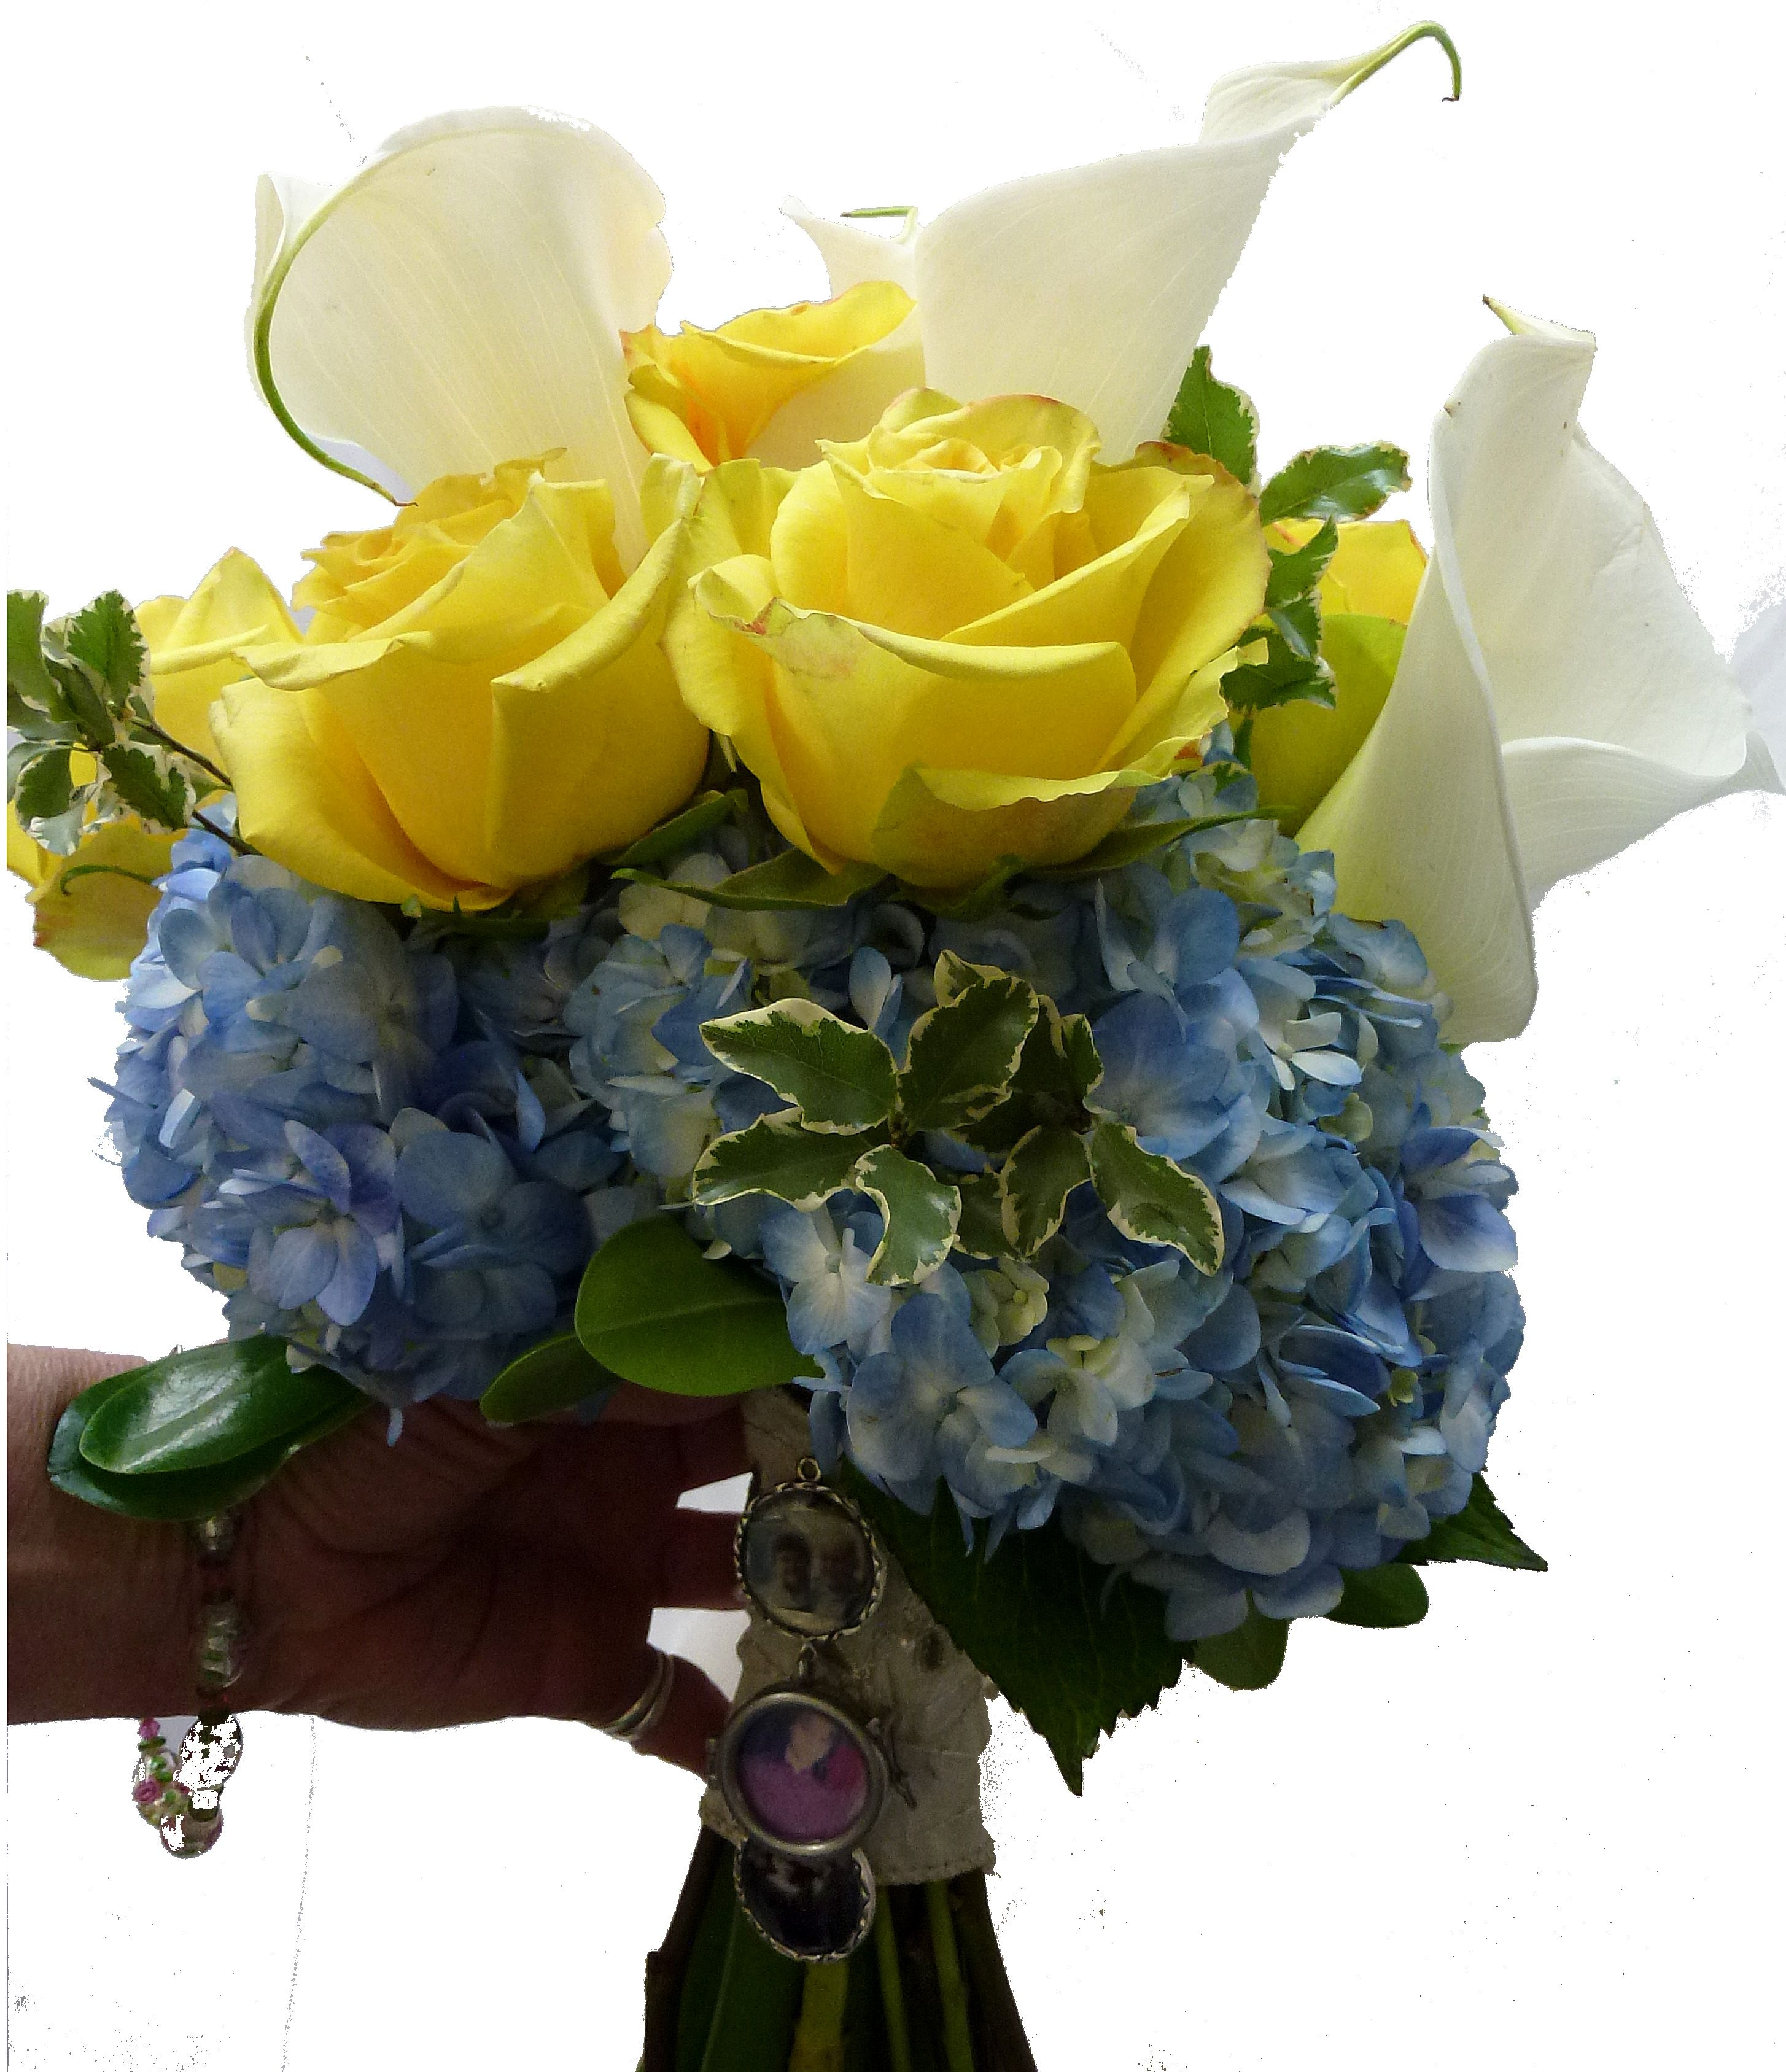 hand-tied memorial bouquet - calla lilies, yellow roses, hydrangea